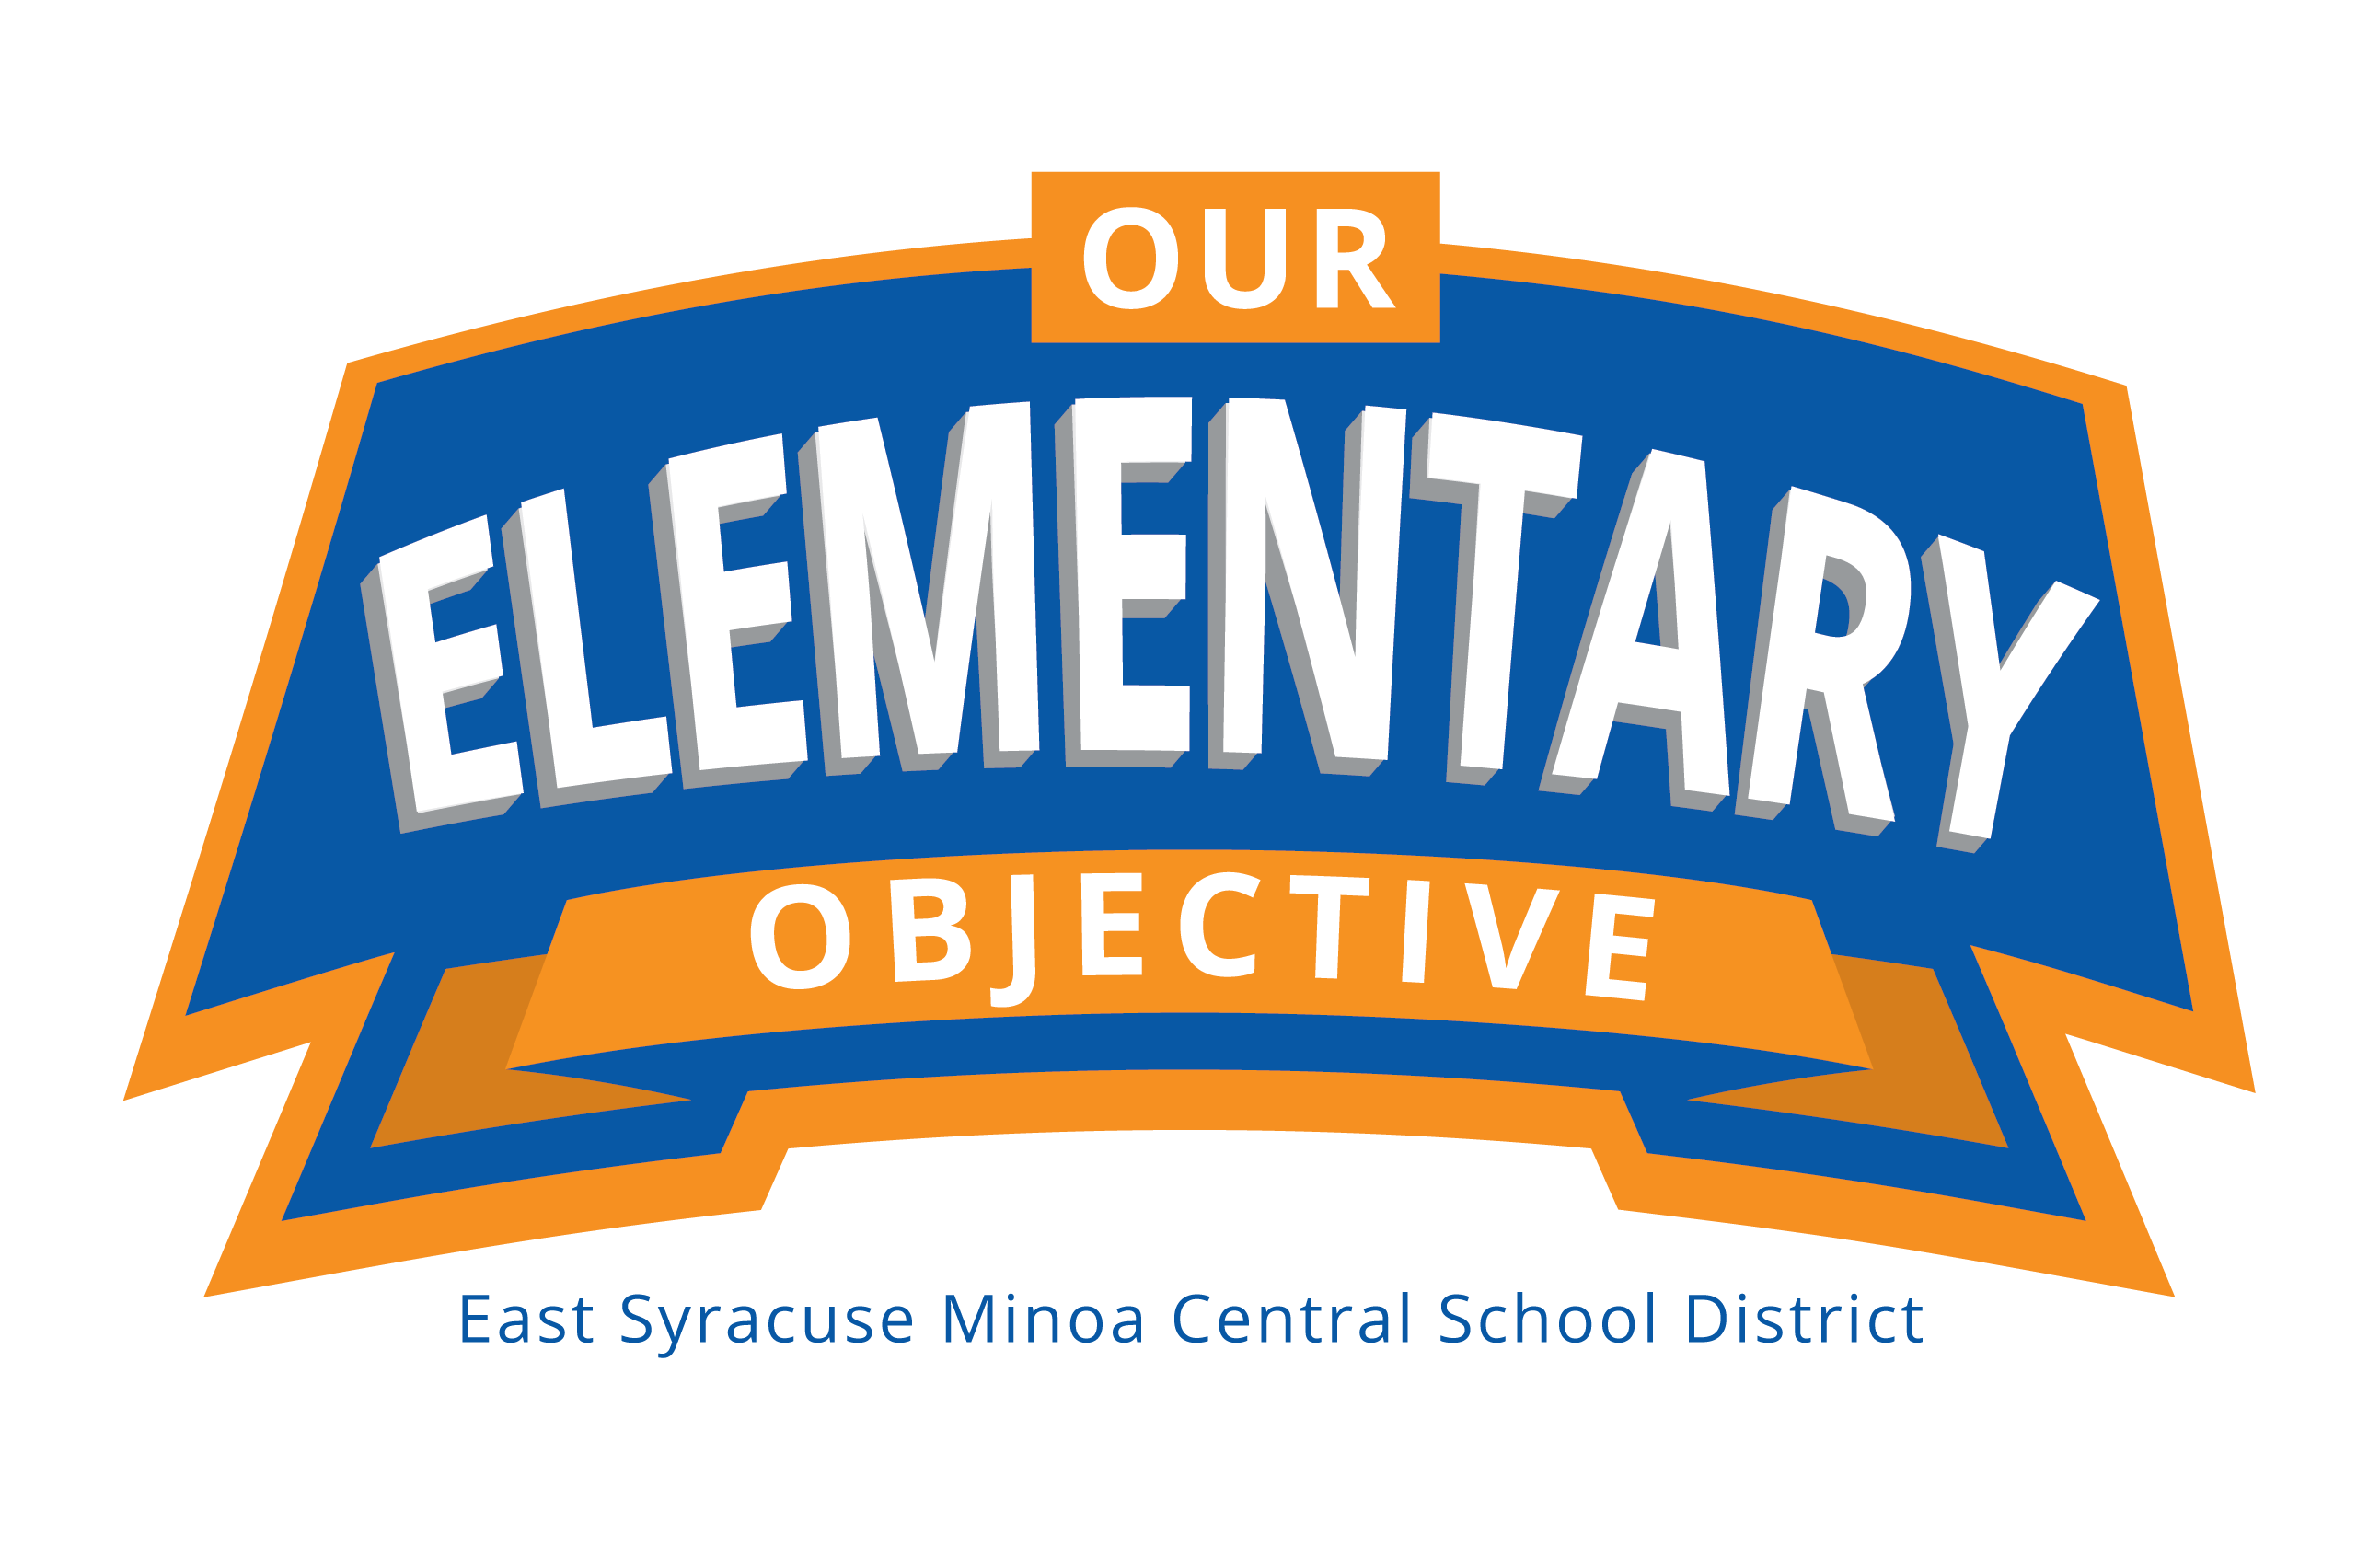 Our Elementary Objective Graphic Logo